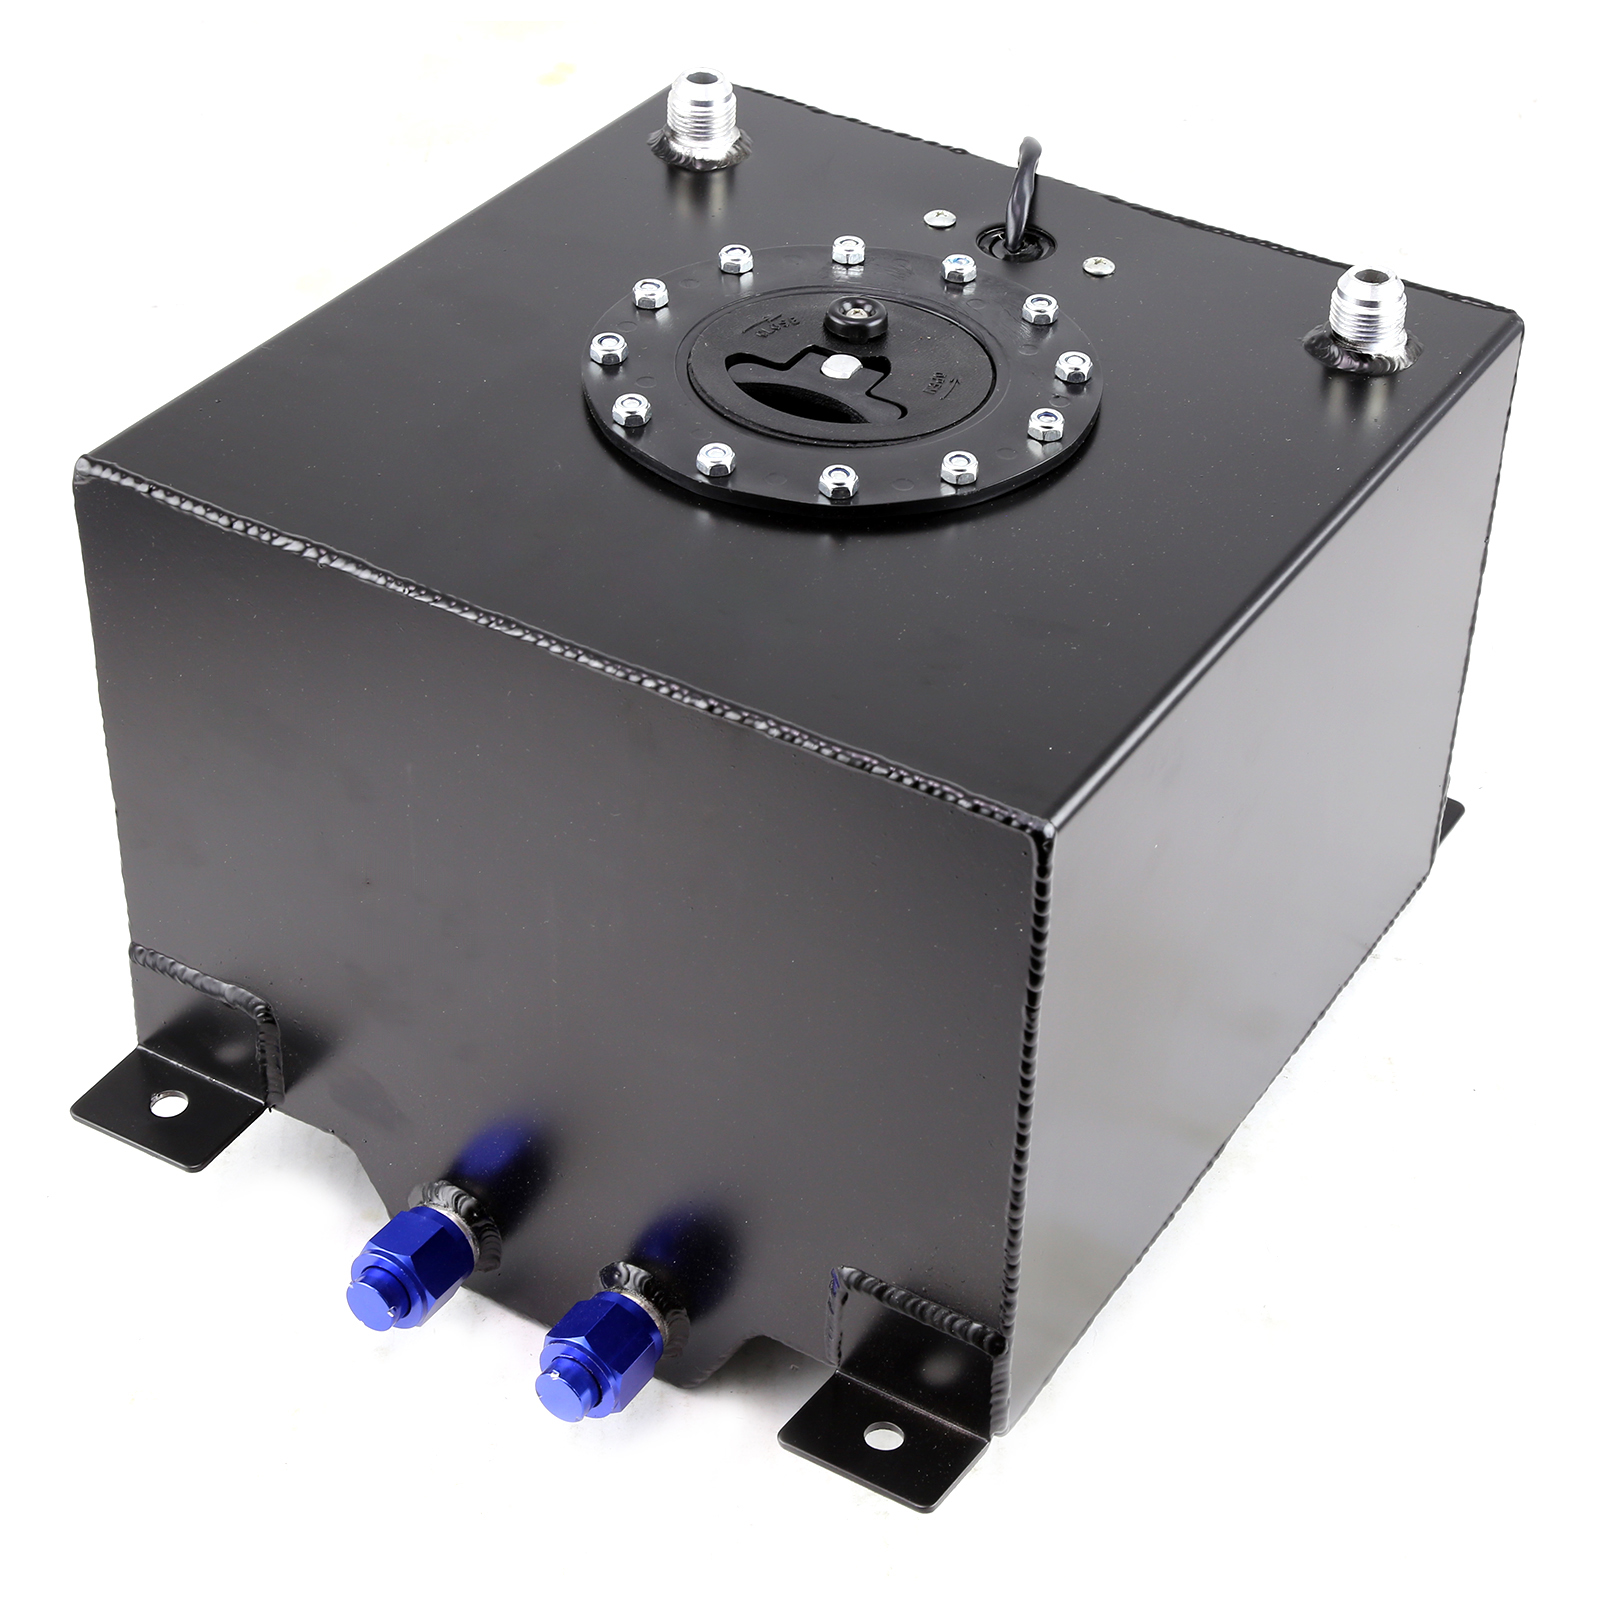 5 Gallon / 20 Litre Lightweight Black Aluminum Fuel Cell w/ Sender